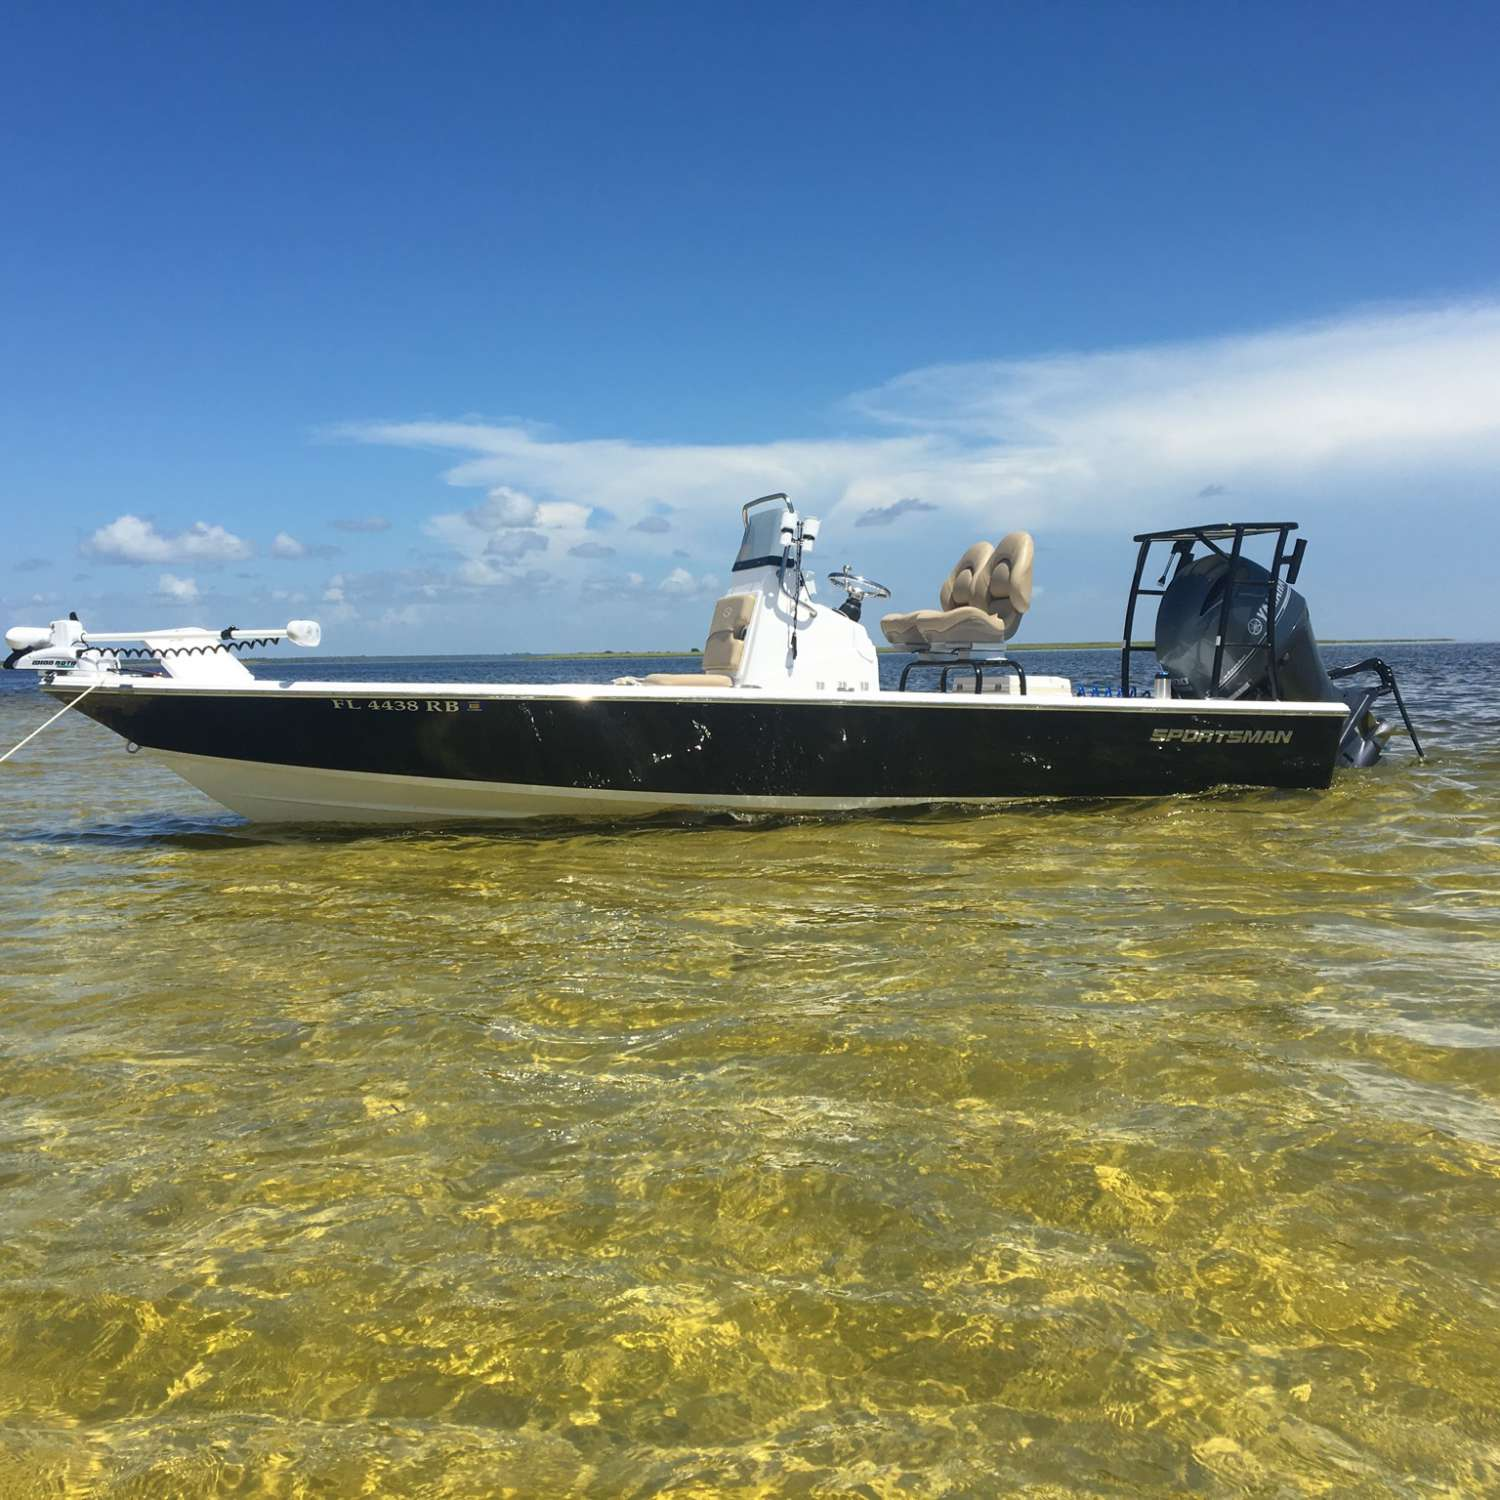 Title: Russell's 214 - On board their Sportsman Tournament 214 SBX Bay Boat (Pre-2020) - Location: Jacksonville, Florida. Participating in the Photo Contest #SportsmanAugust2017